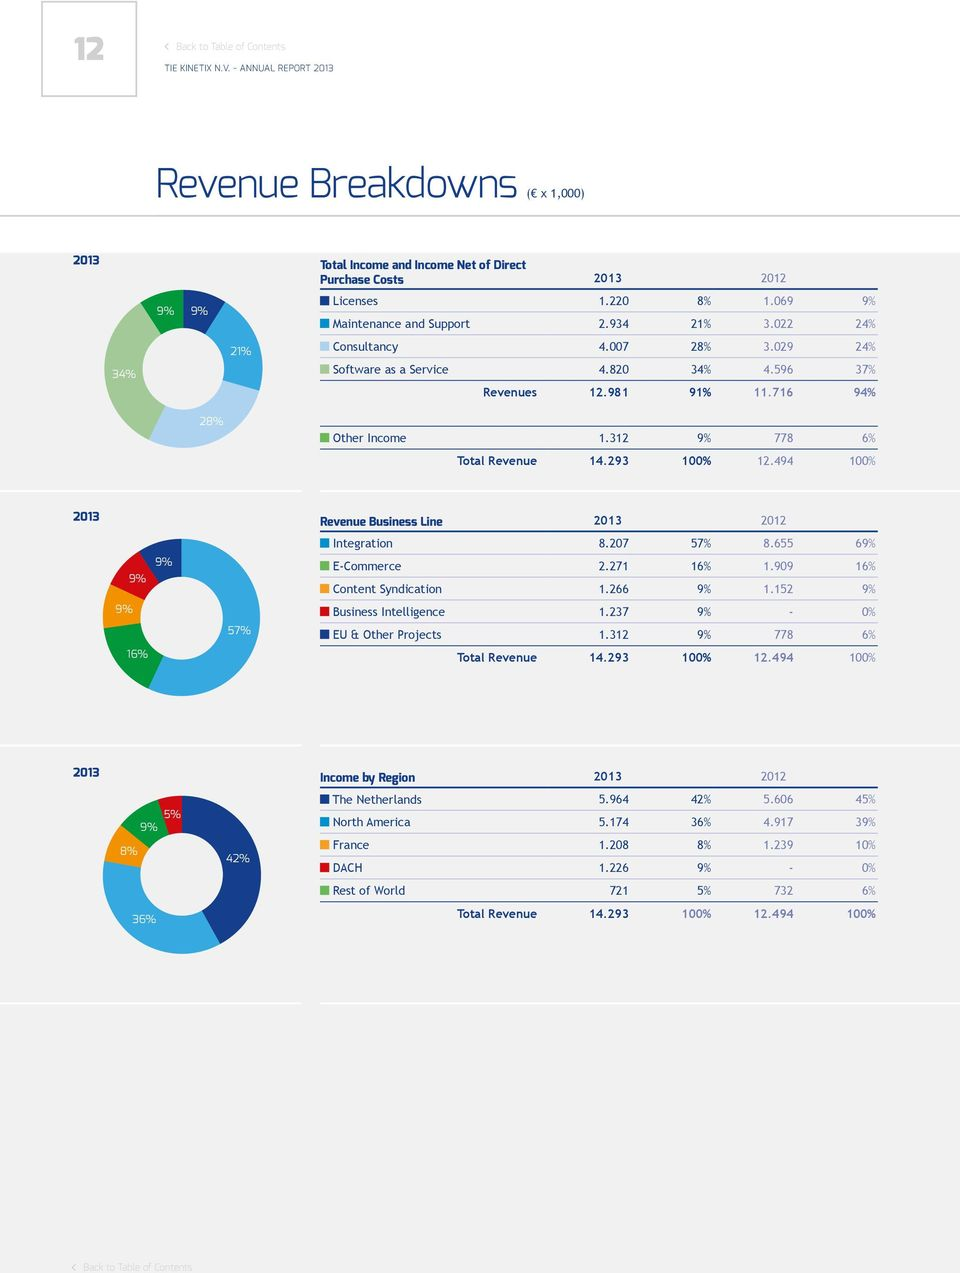 596 37% Revenues 12.981 91% 11.716 94% 28% Other Income 1.312 9% 778 6% Total Revenue 14.293 100% 12.494 100% 2013 Revenue Business Line 2013 2012 9% 9% 9% 57% Integration EU & Other projects 8.